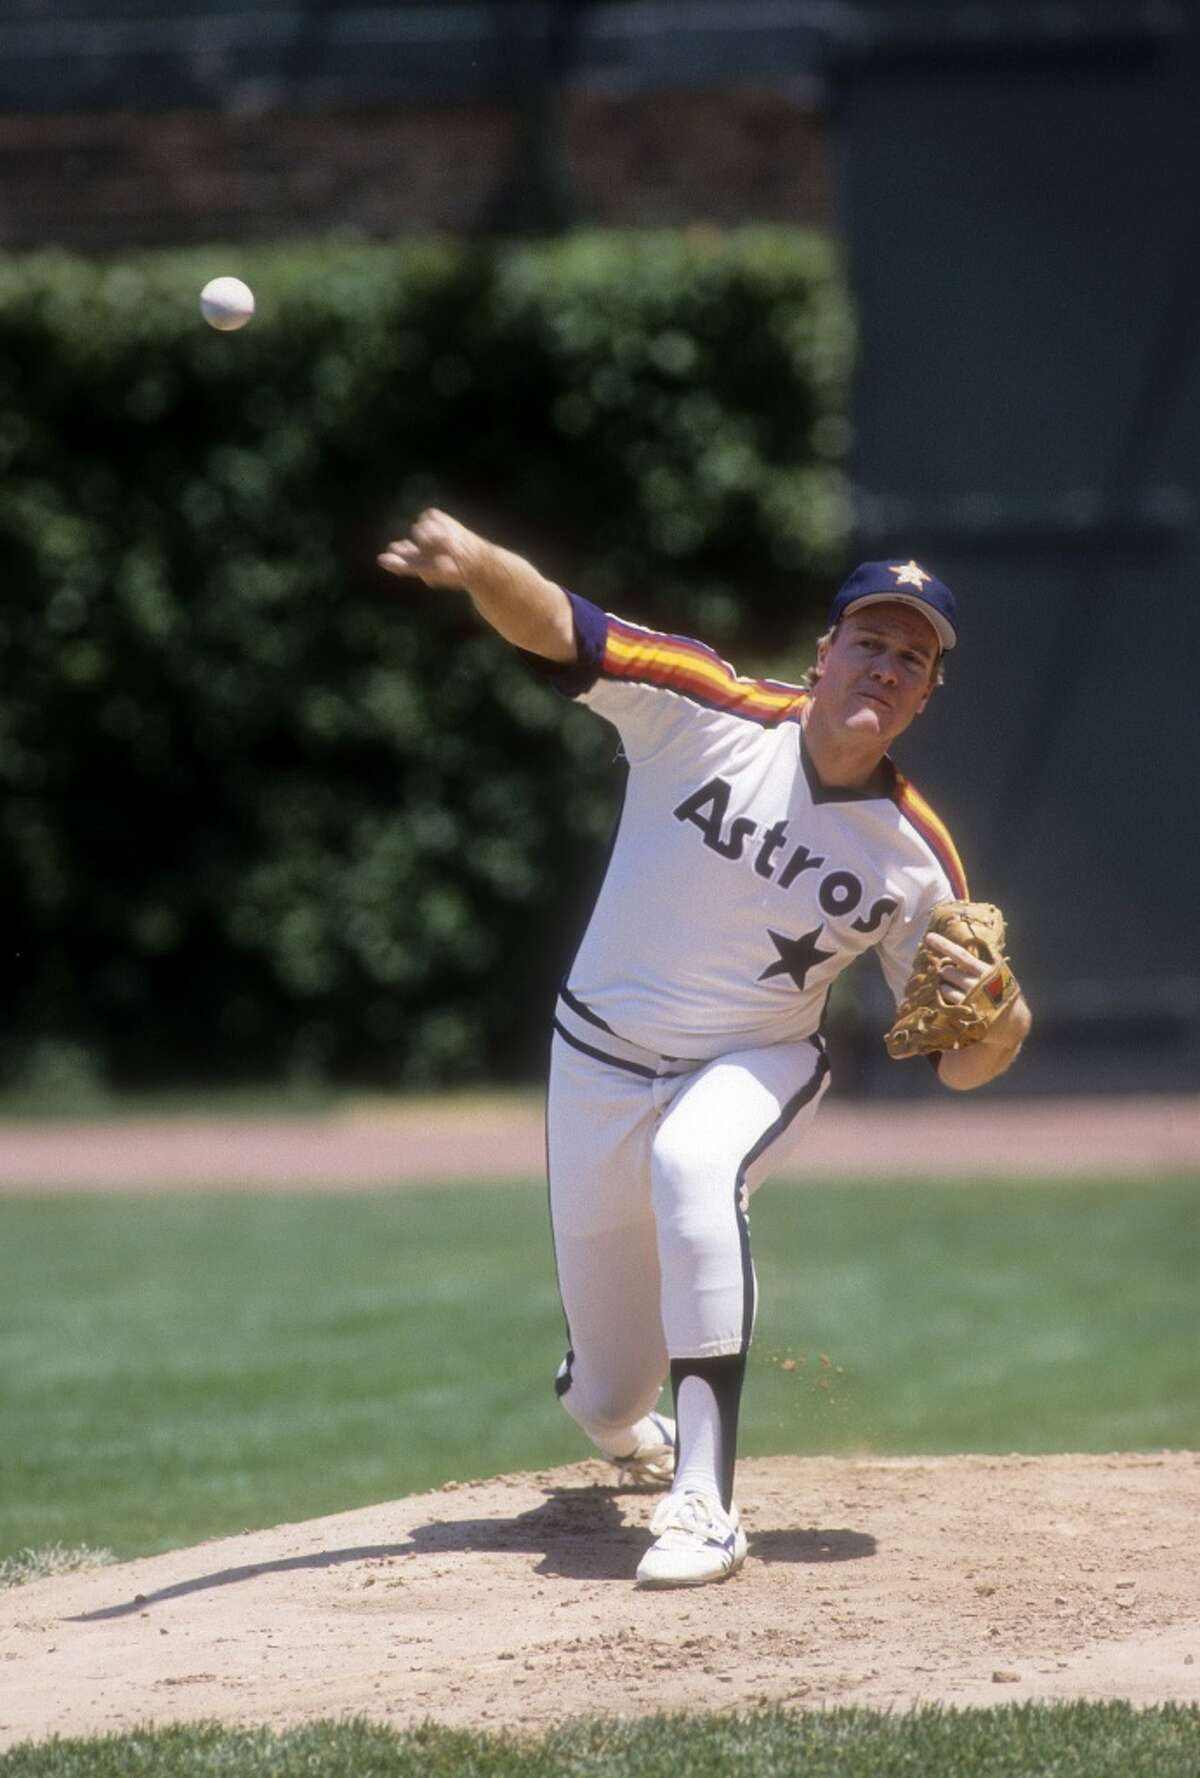 THE BEST Dec. 10, 1982: Astros acquire RHP Mike Scott from the Mets for OF Danny Heep. Scott was a struggling starter for the Mets, so the Astros got him extremely cheap. Scott went on to become one of the National League's most dominant pitchers including a 1986 season where he went 18-10 with a 2.22 ERA and won the Cy Young Award.